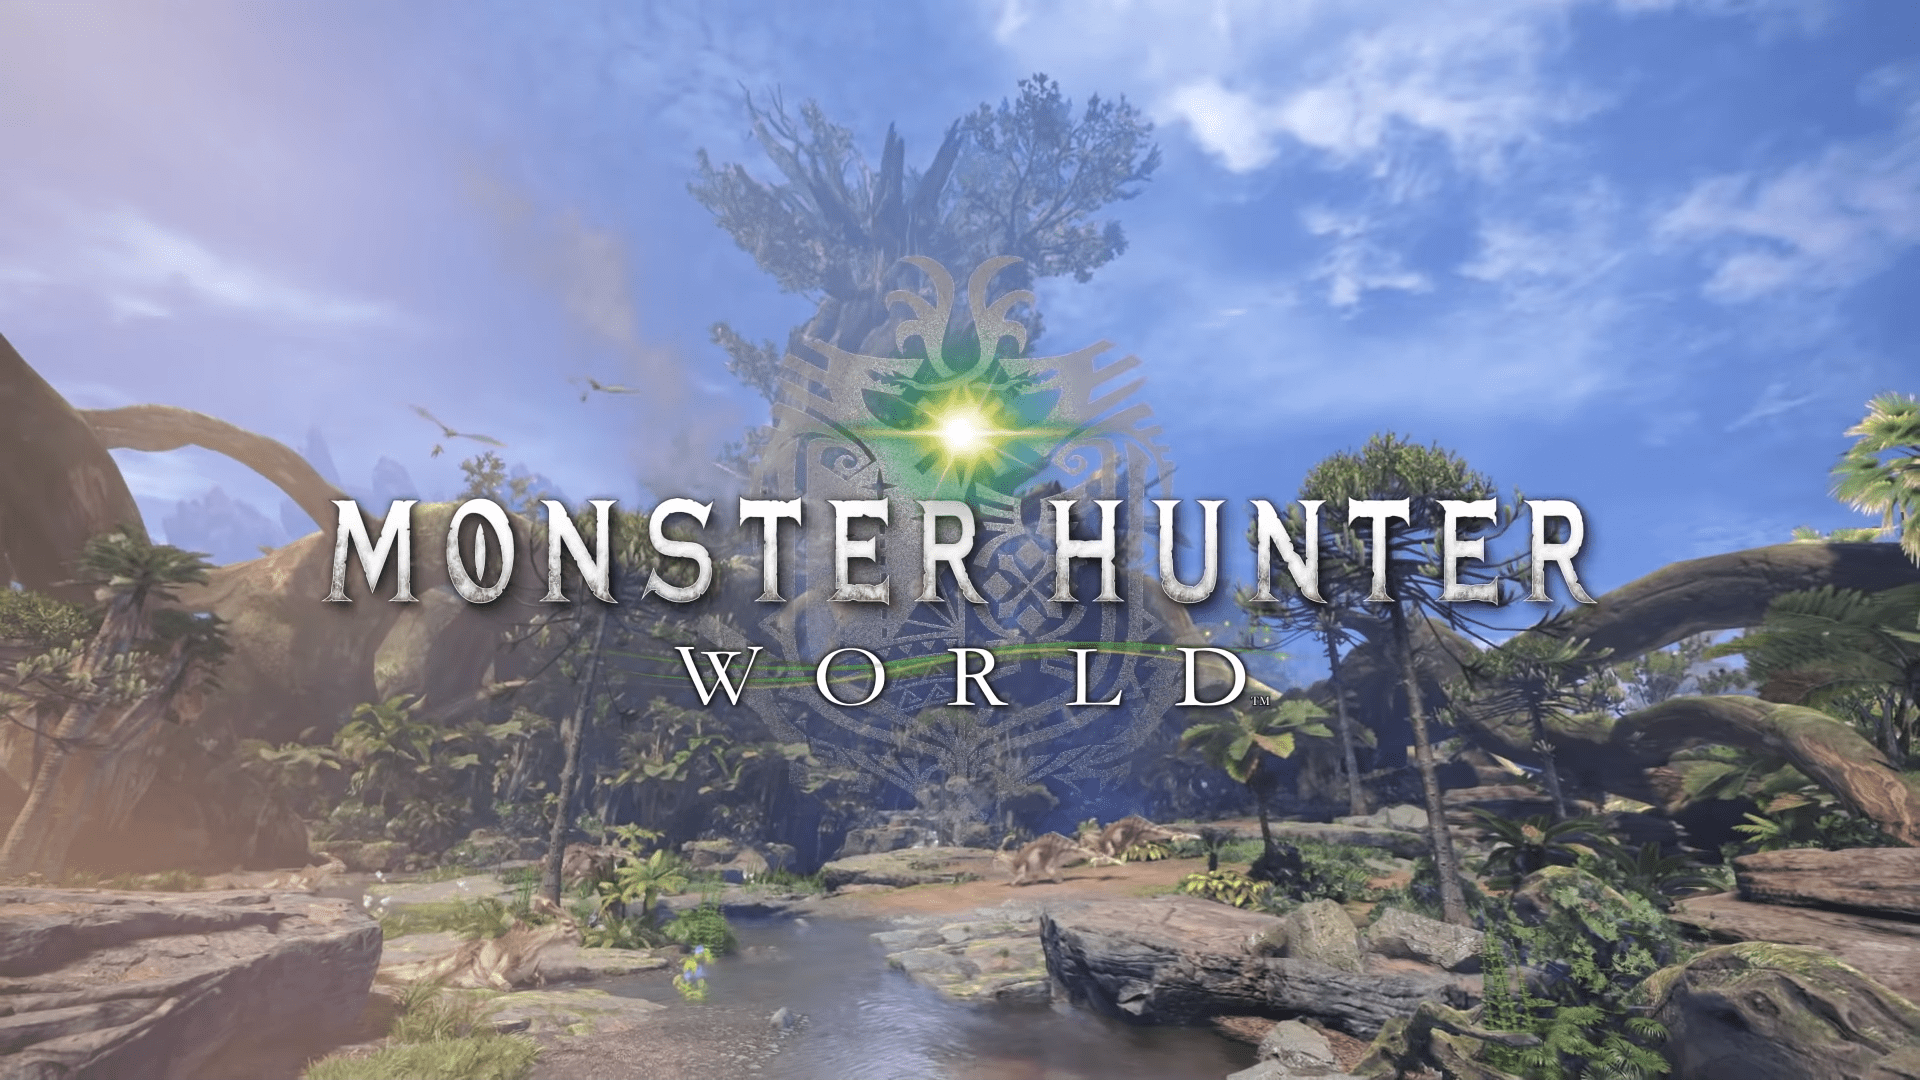 monster hunter world wallpapers 1920x1080